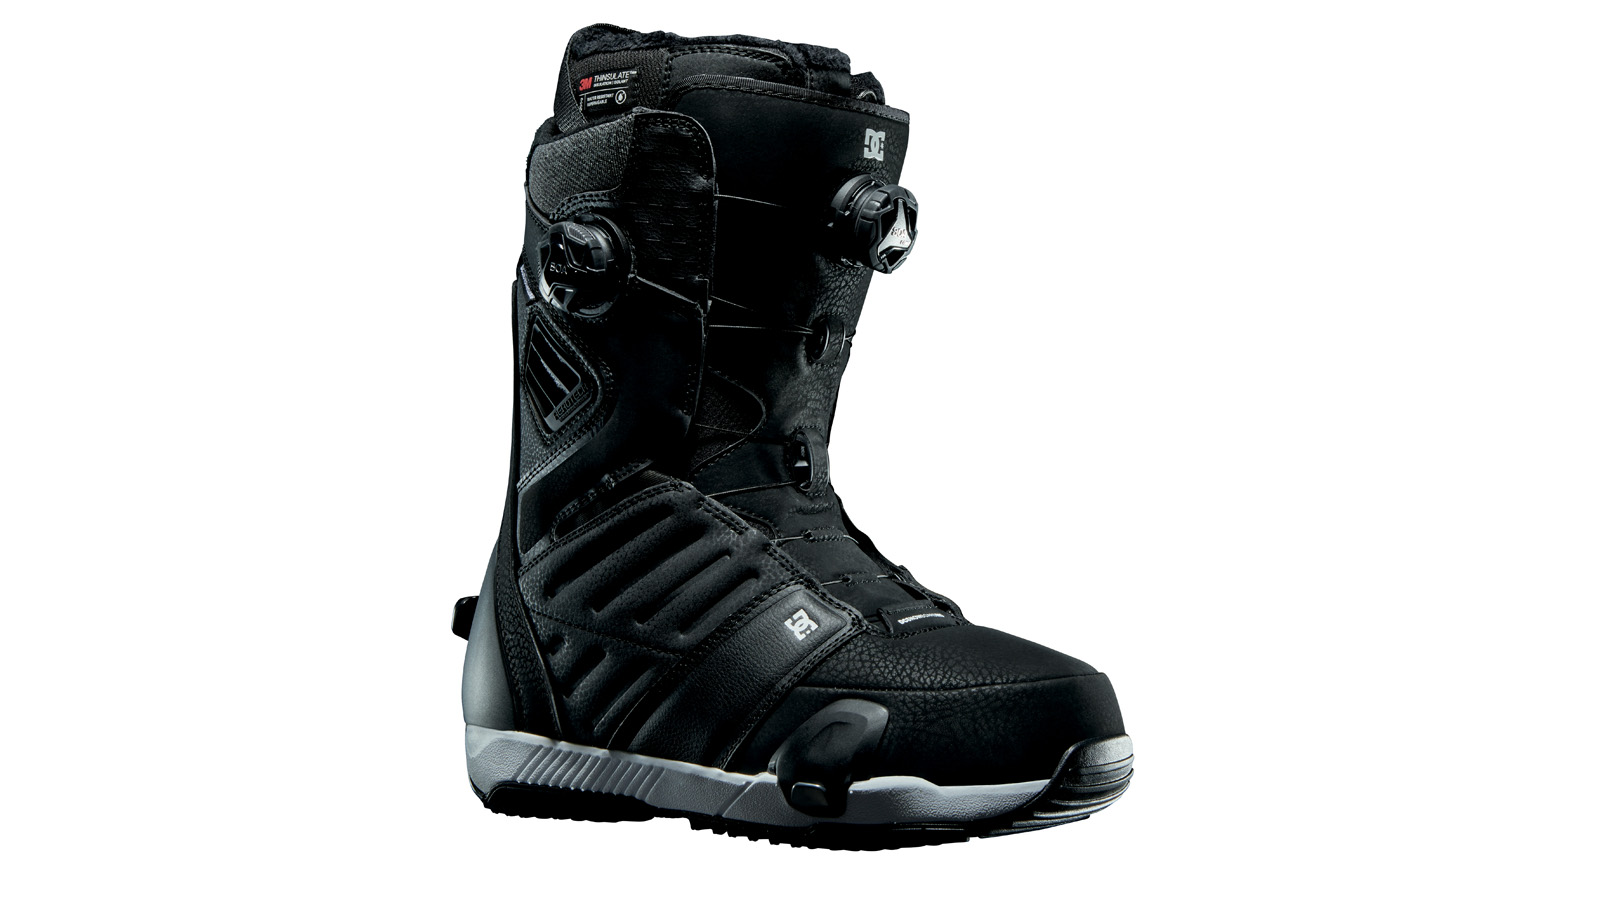 DC 21/22 Snowboard Boots